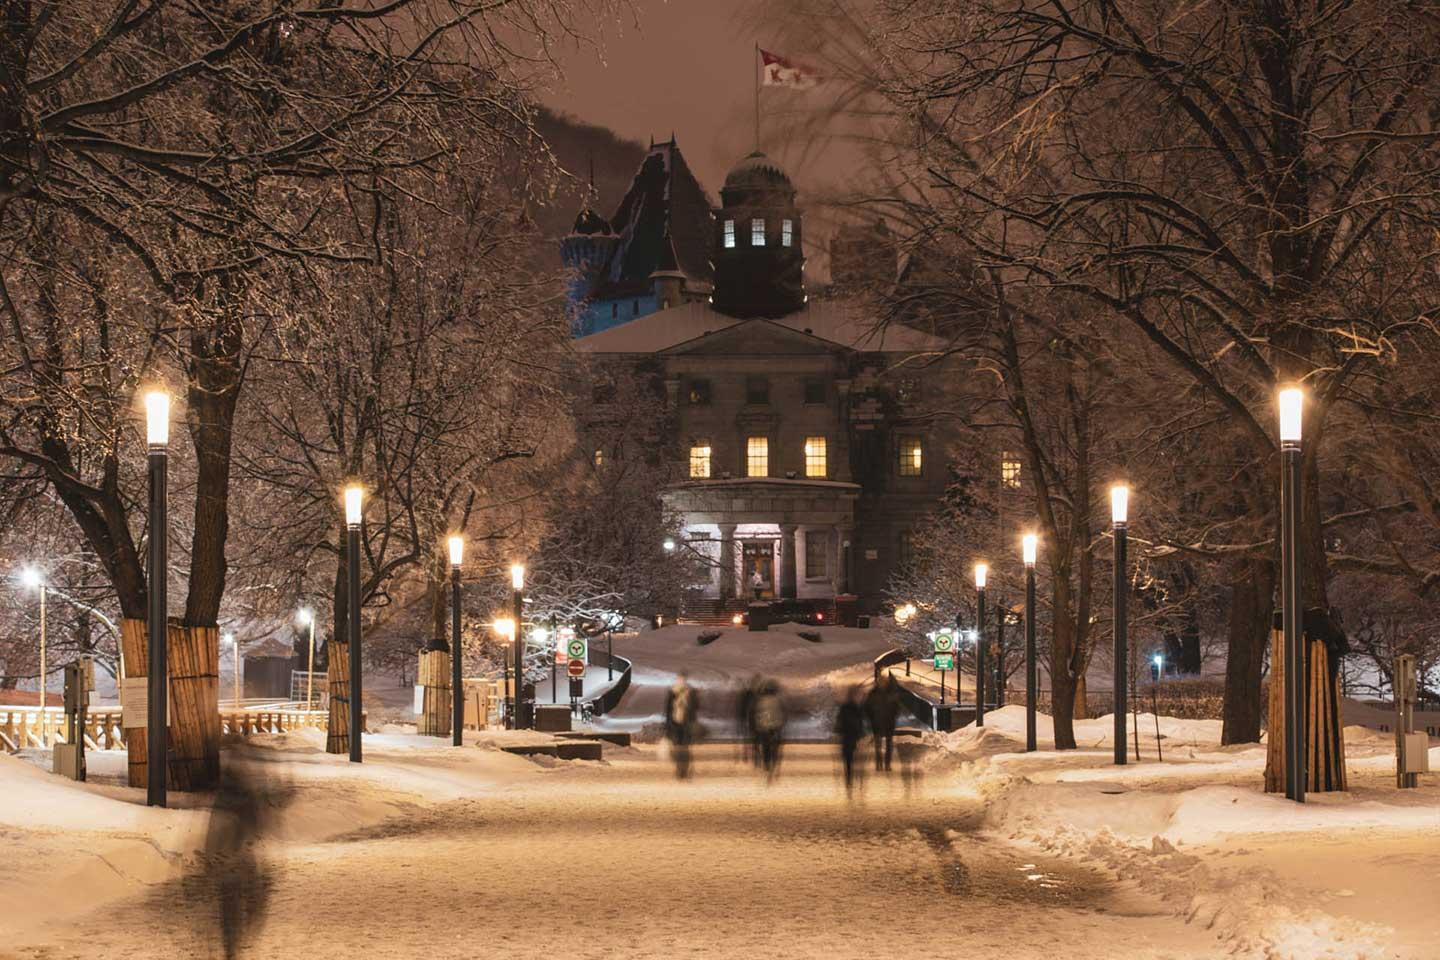 SHUFFLE smart pole provides a high-quality, connected multi-purpose space for McGill University